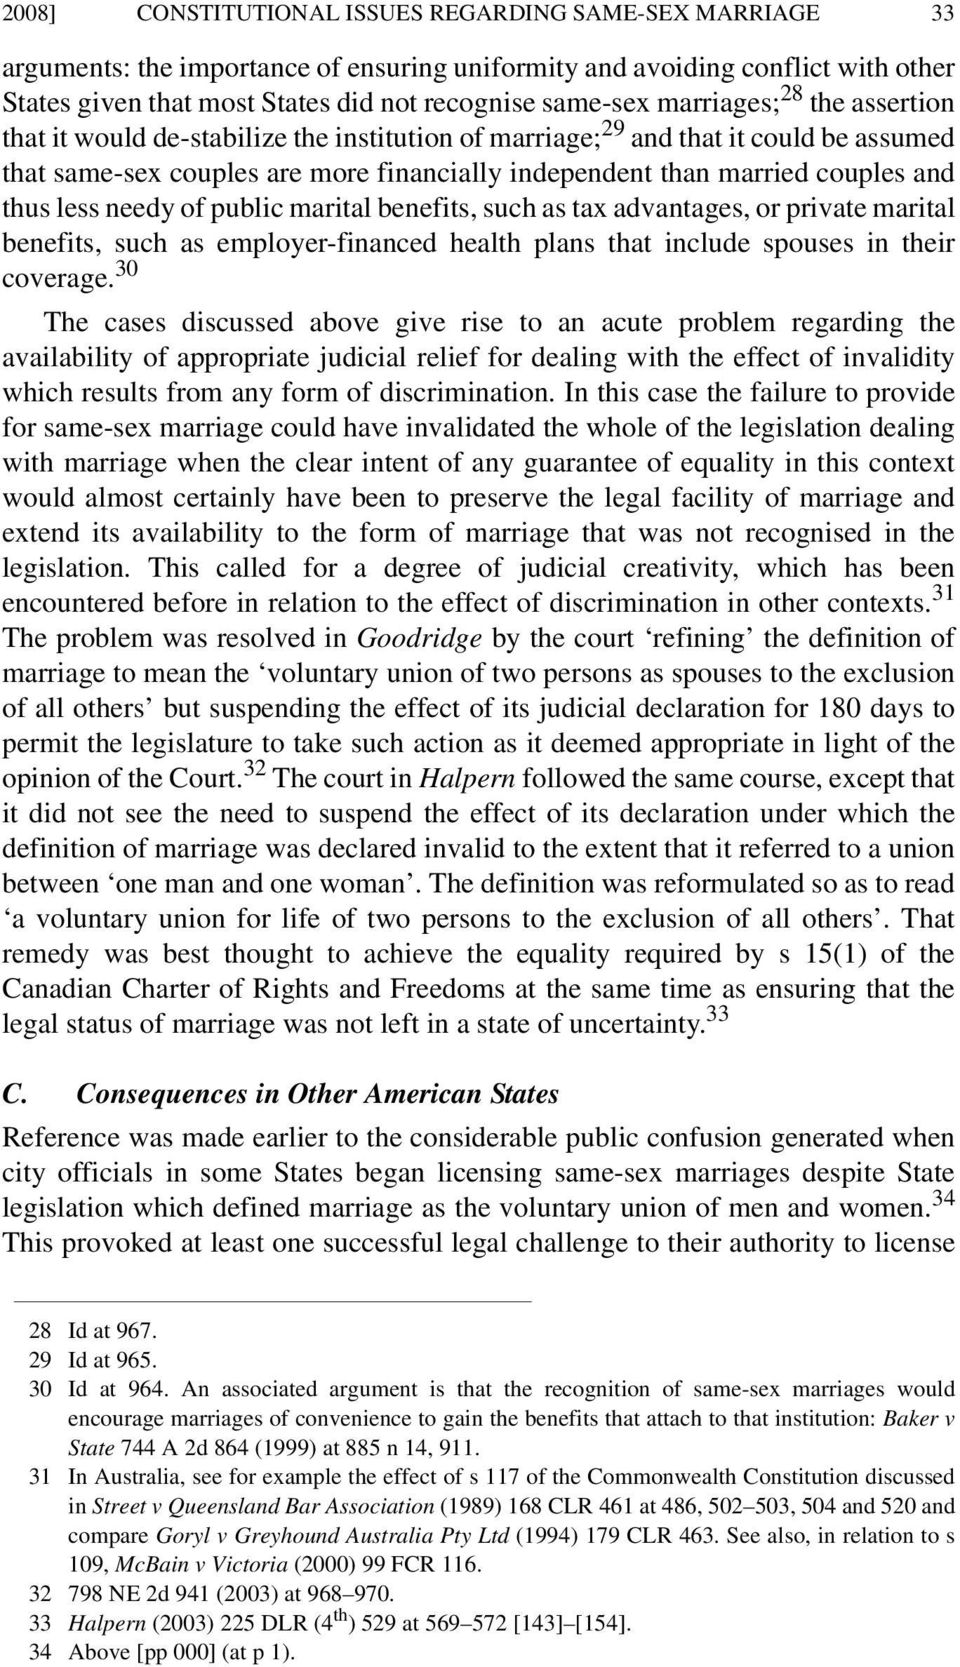 thus less needy of public marital benefits, such as tax advantages, or private marital benefits, such as employer-financed health plans that include spouses in their coverage.